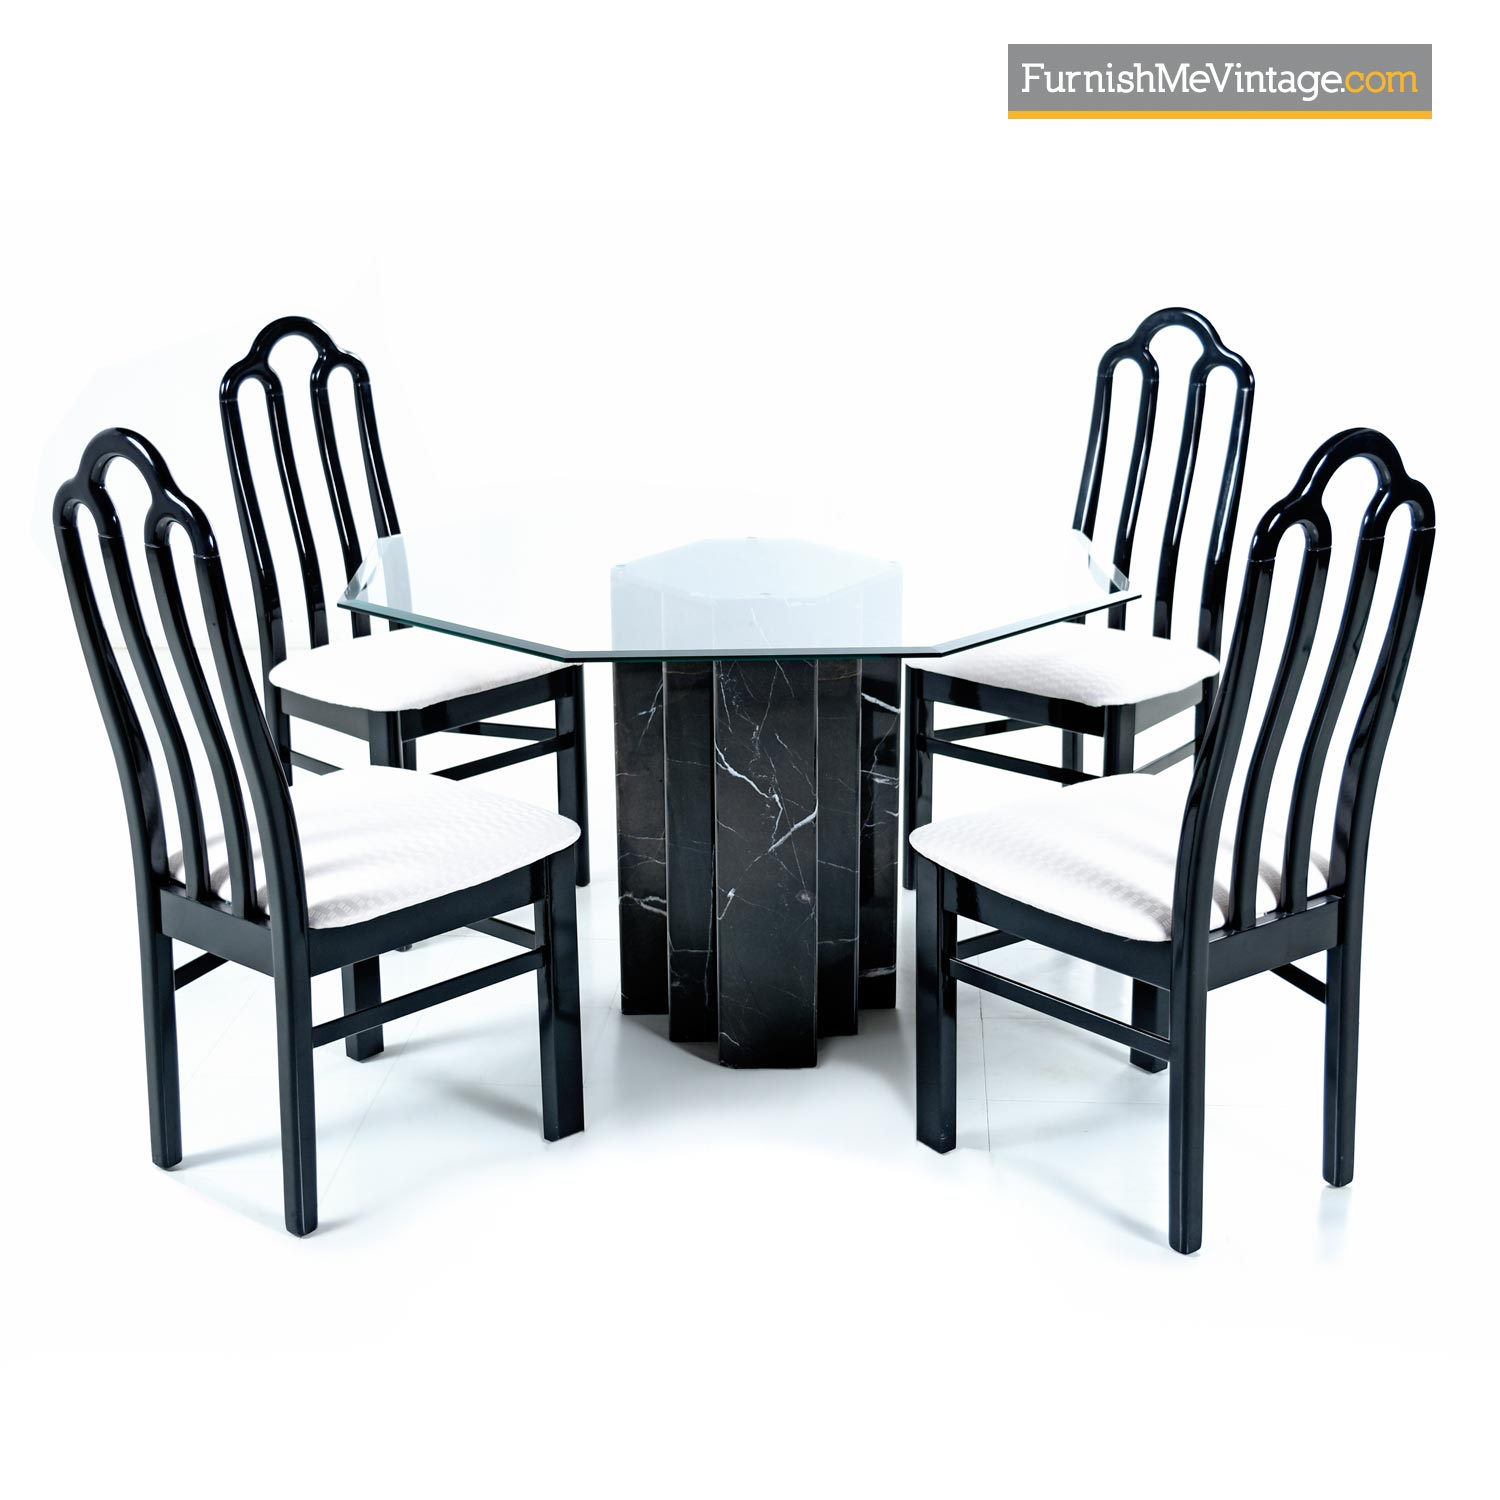 Italian Black Marble Pedestal Table With Lacquer Chairs Dining Set